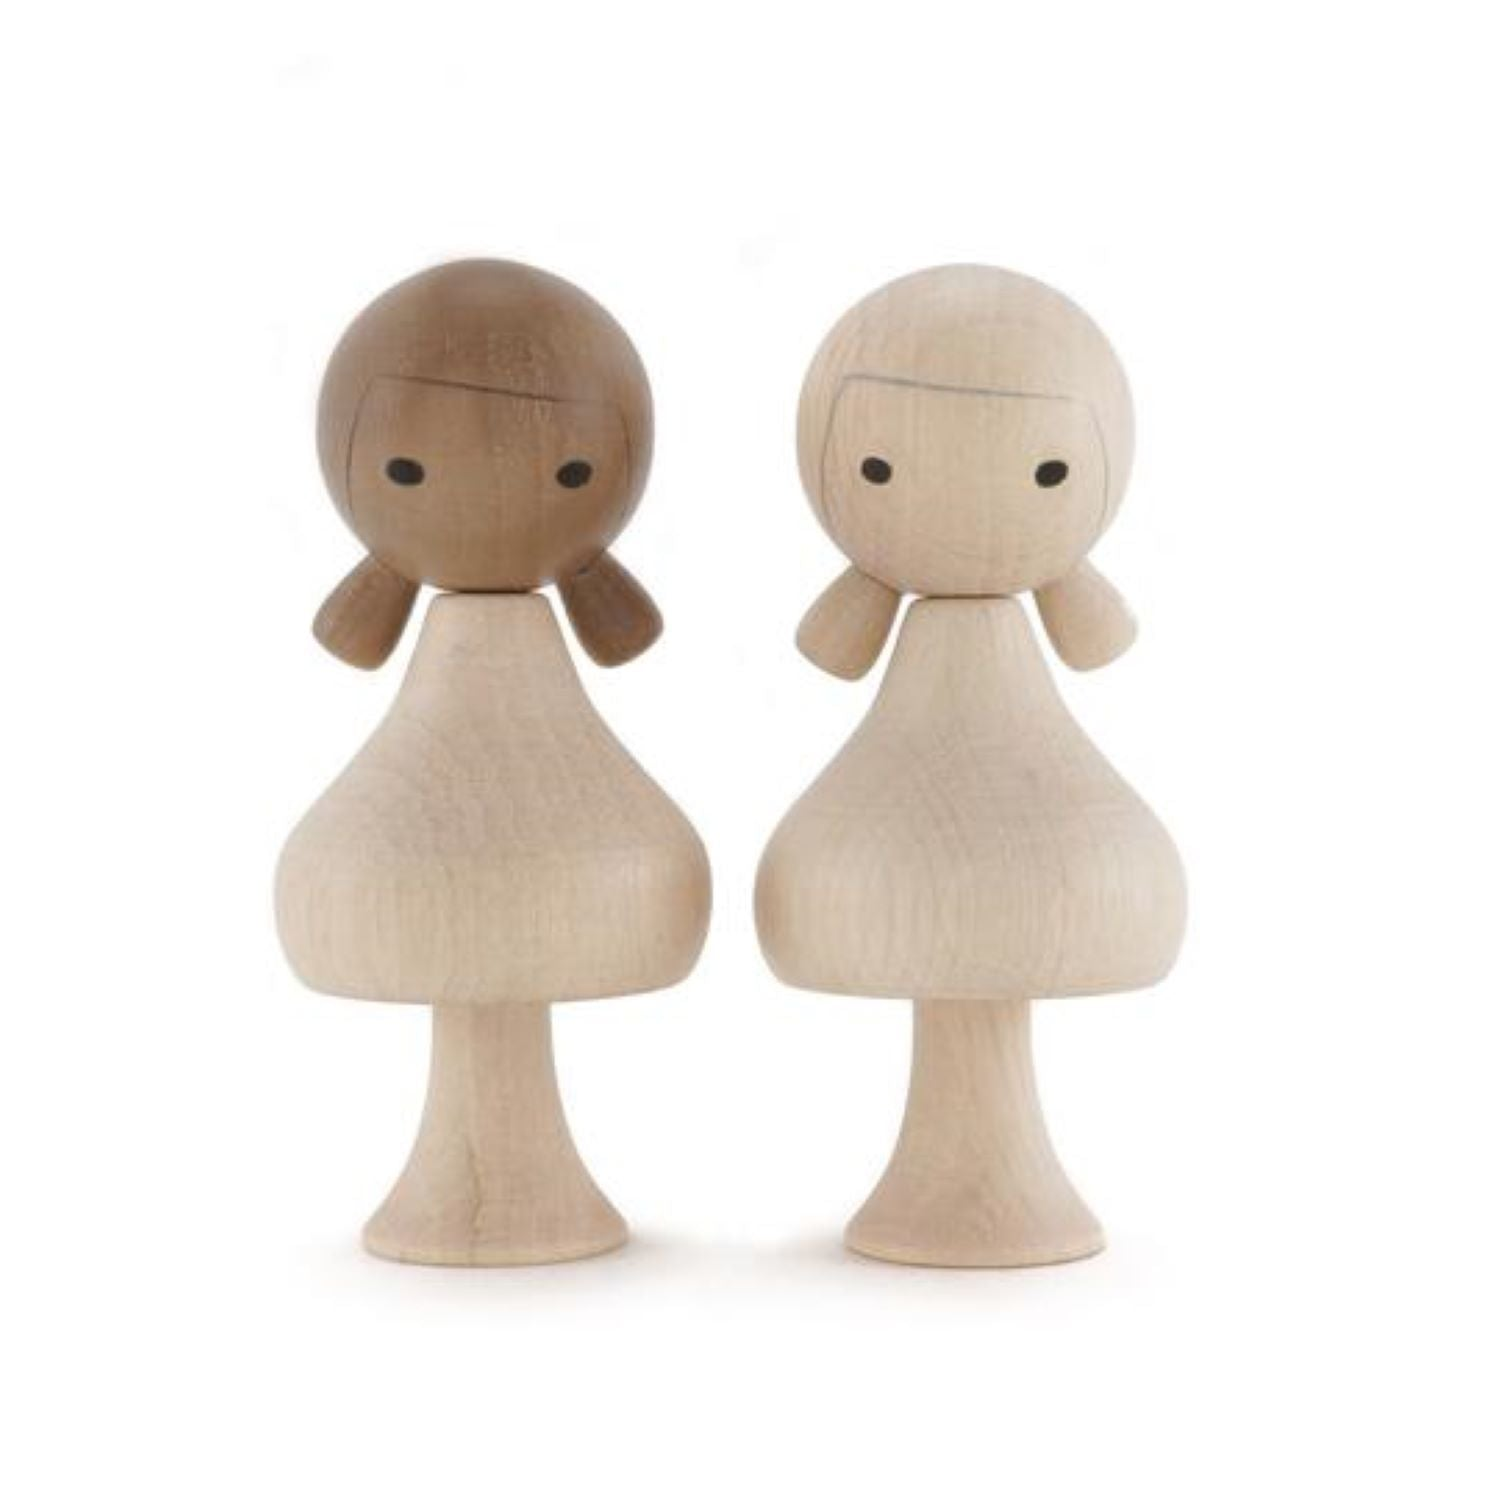 Clicques - DIY Girls Asia Wooden Figurines